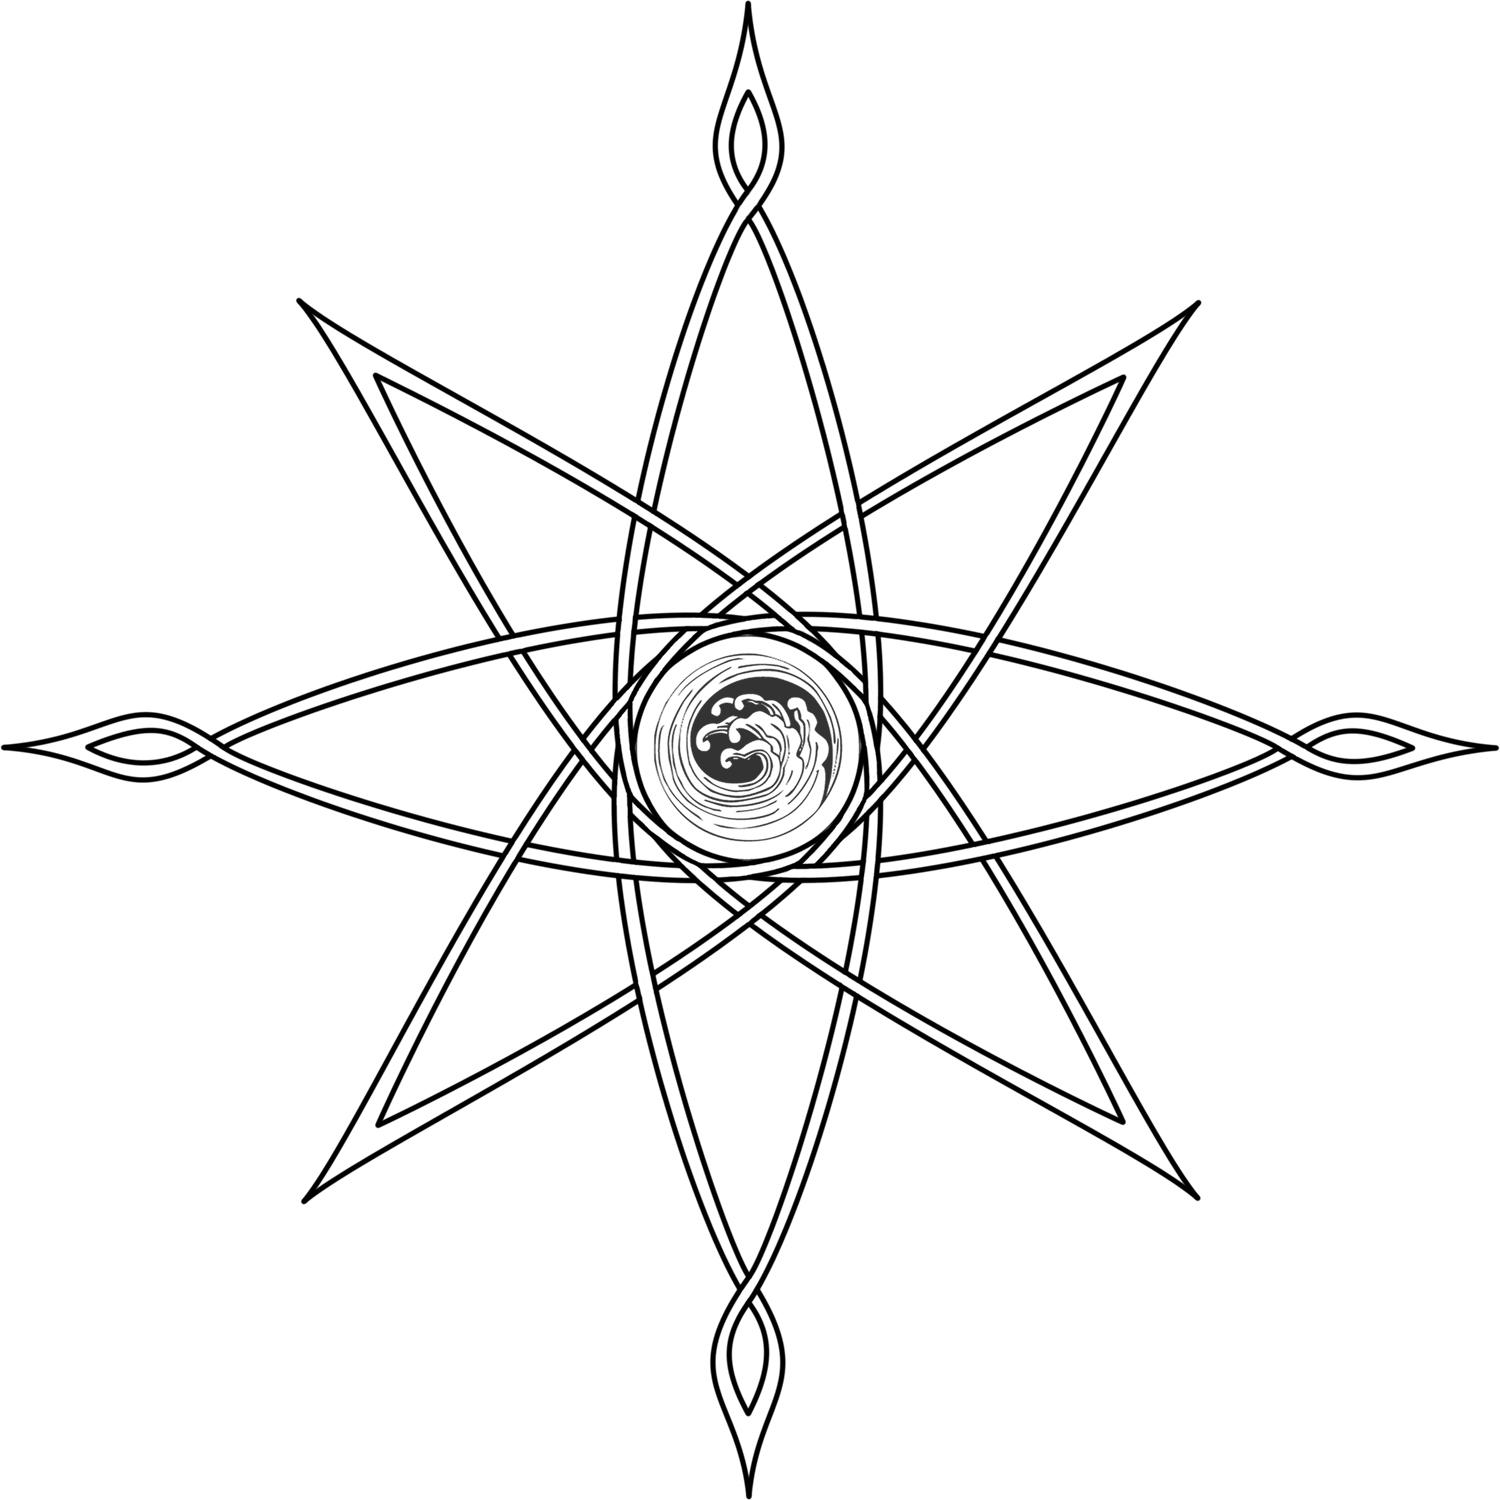 Compass Tattoo Line Drawing : Compass rose by midnightlynx on deviantart